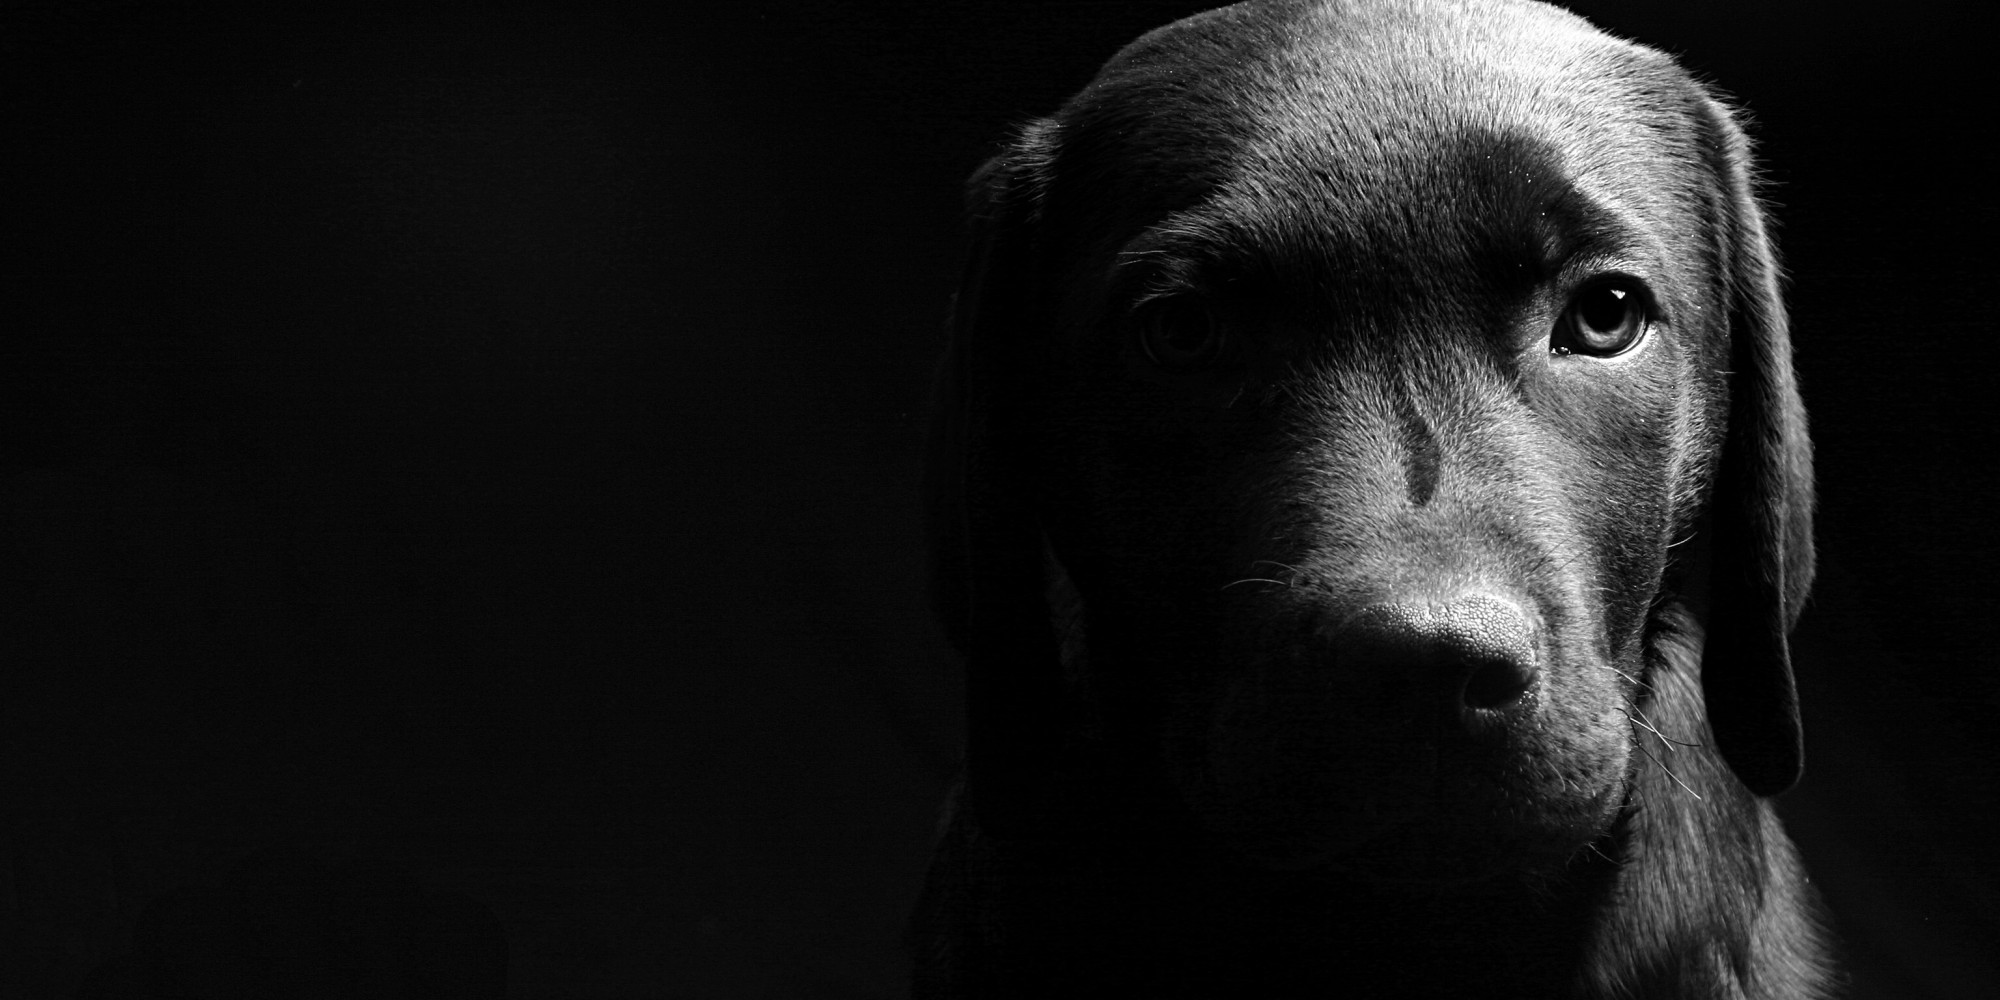 2000x1000 - Wallpaper Dogs Black and White 41